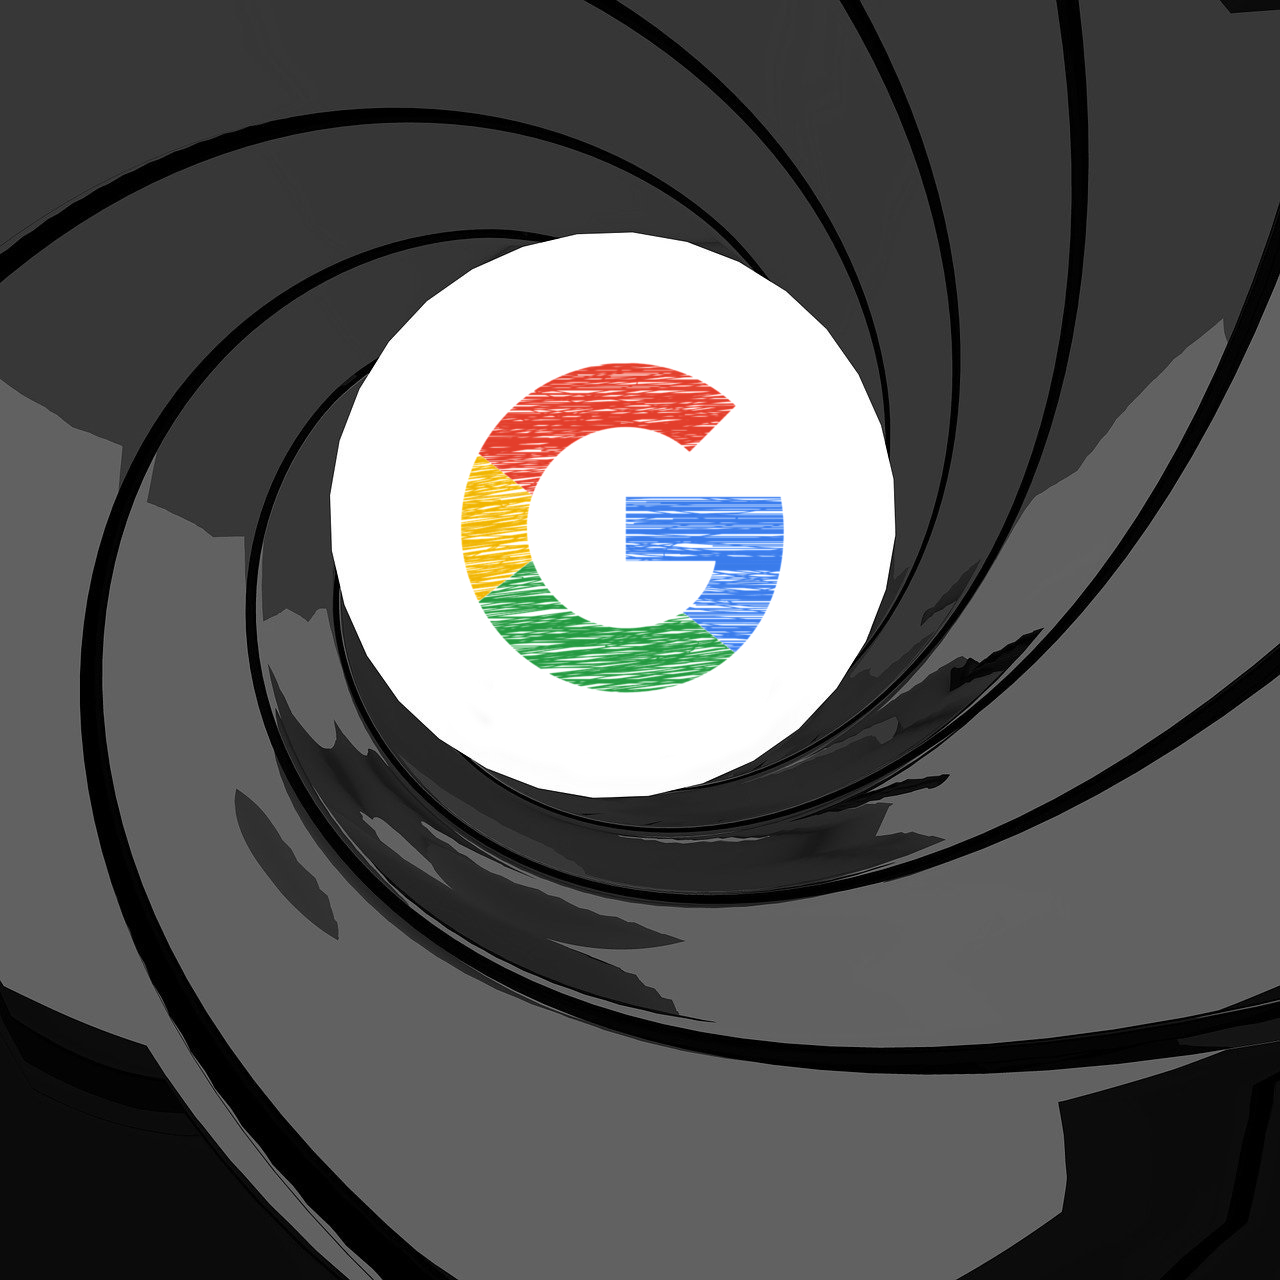 The Wall Street Journal published a hit piece against Google